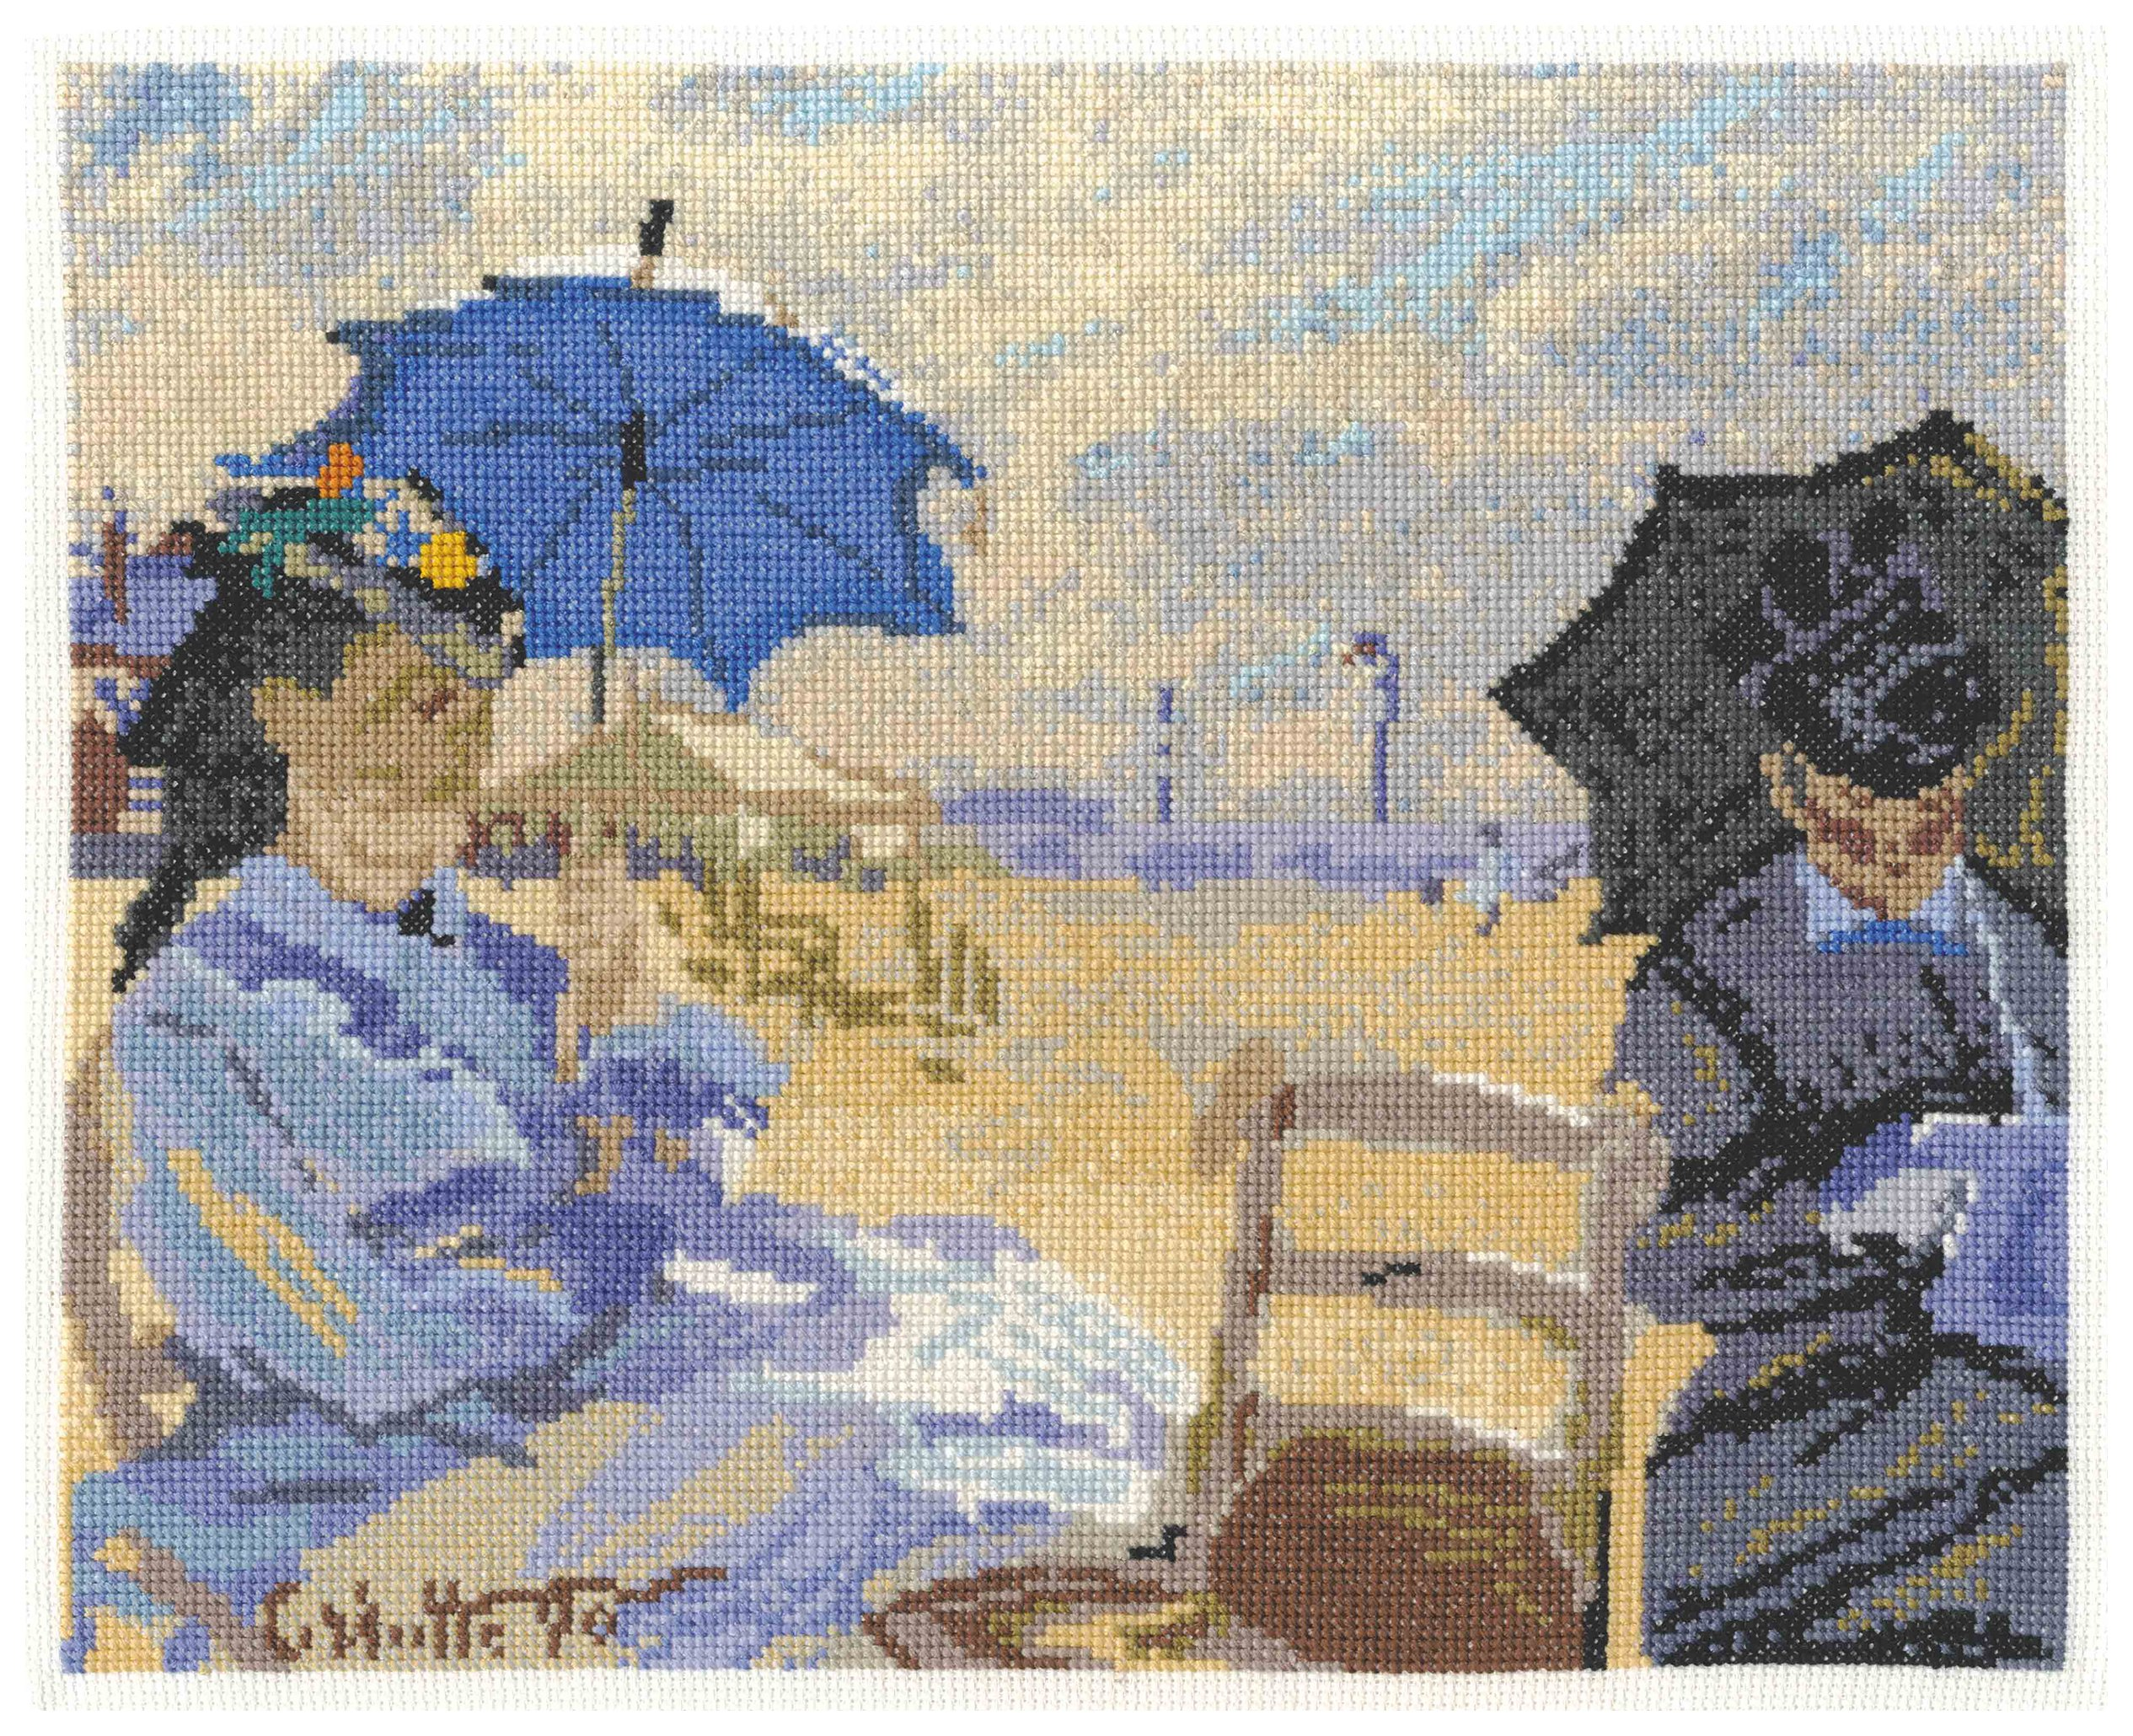 national-gallery-monet-beach-at-trouville-cross-stitch-kit